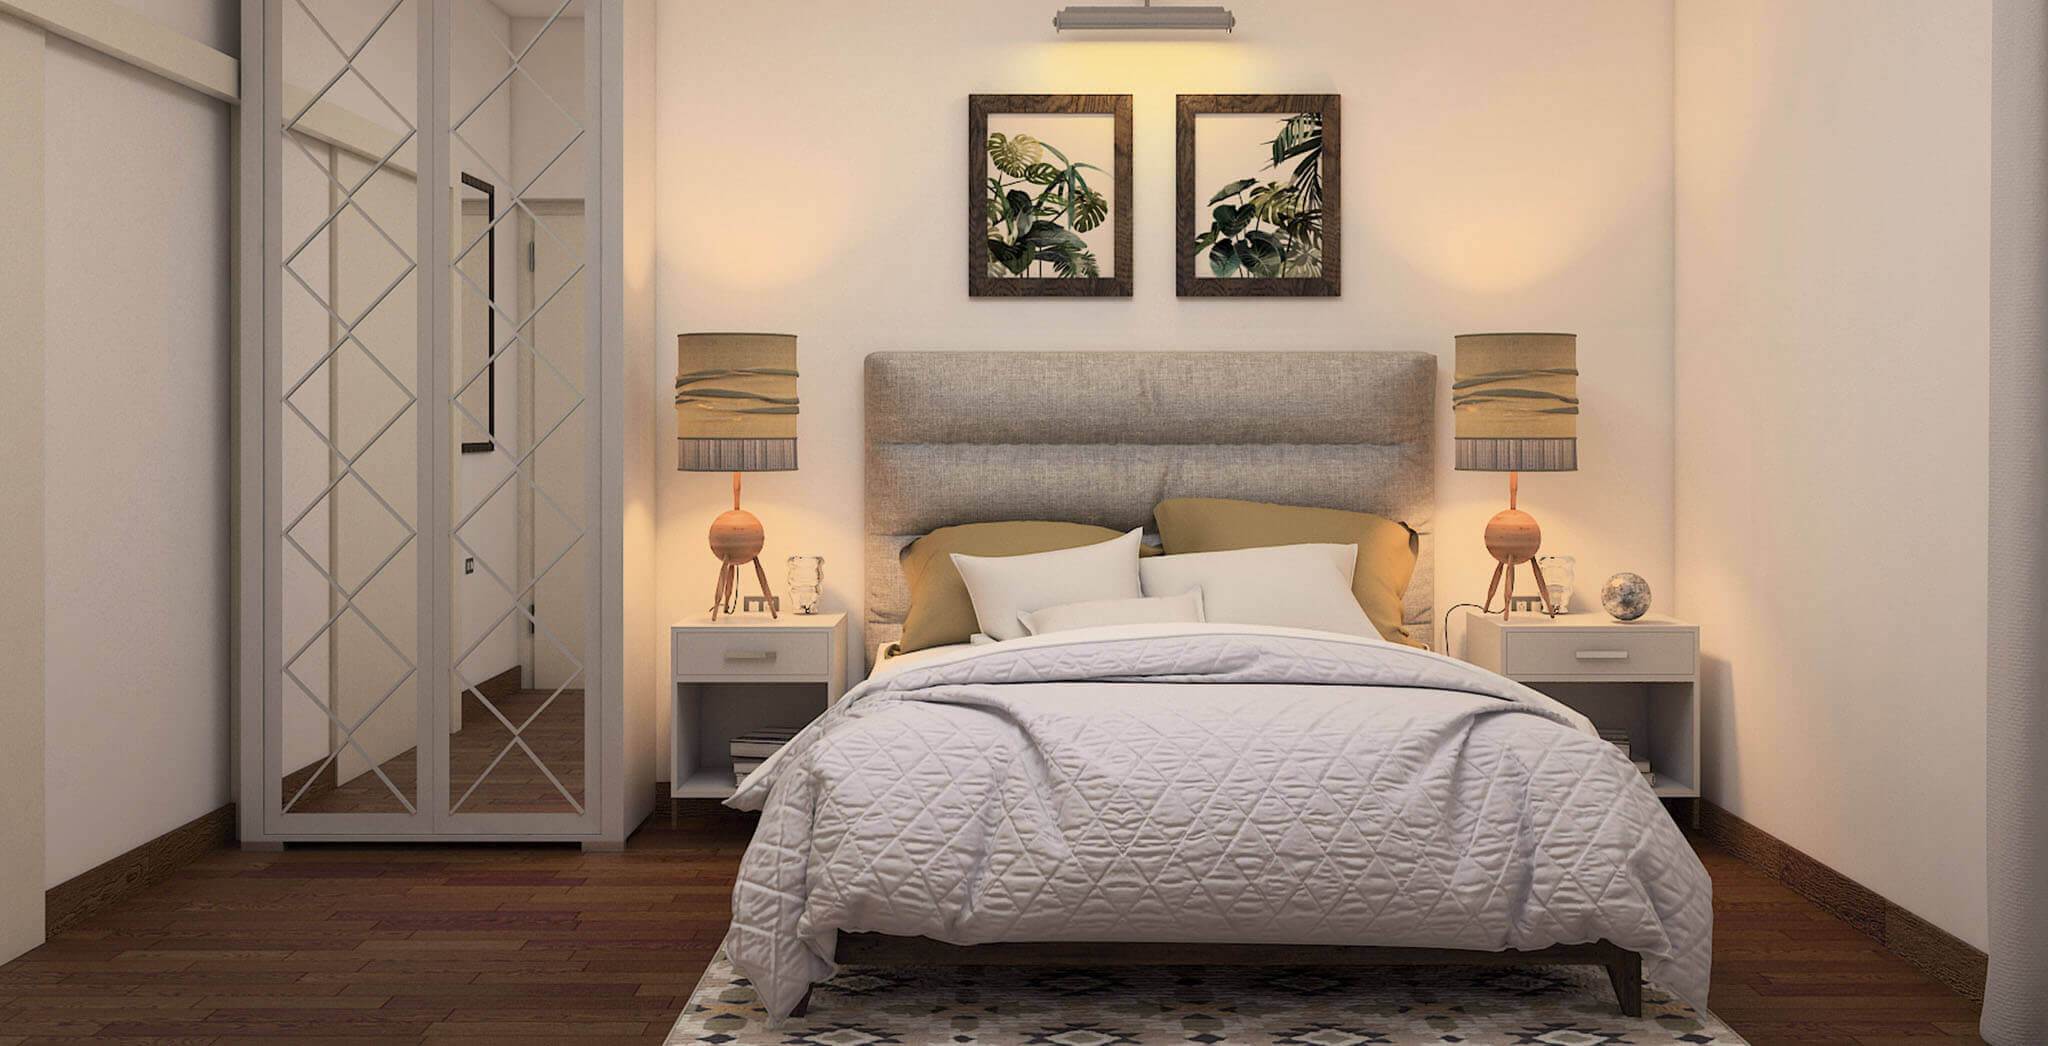 1 2 Bhk Luxury Apartments Homes In Sarjapur Road East Bangalore Parkside East By Brigade Brigade Group